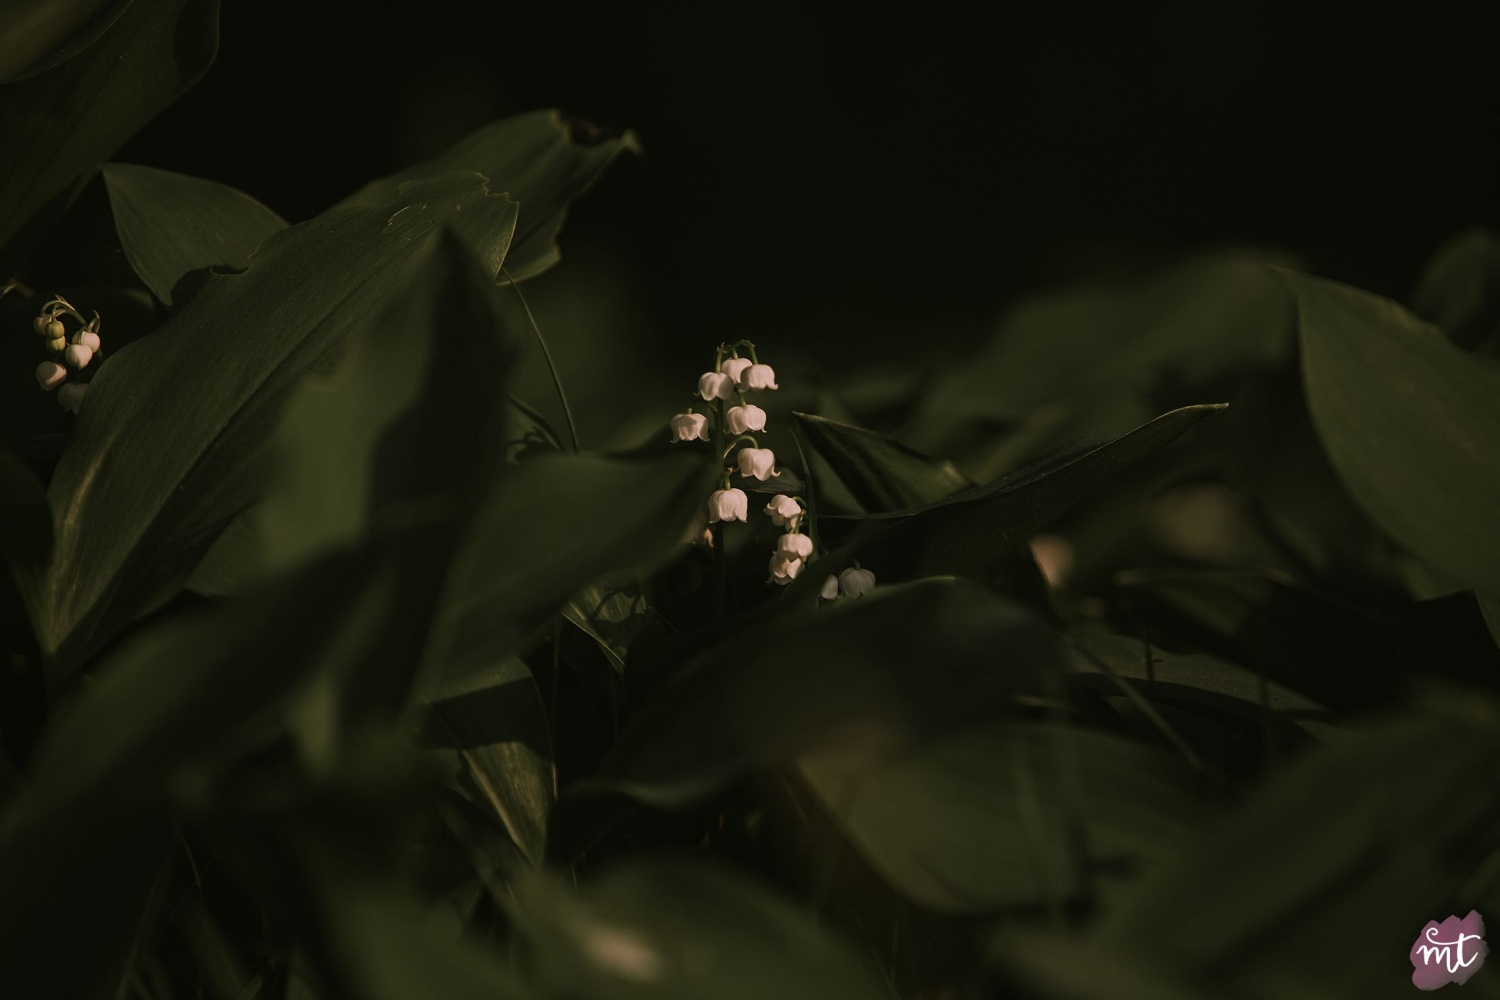 Seasons, Summer, Natural Light, UK Photographer, Real Life, Mother Nature, Lily of the Valley, Seasons: Spring, Summer, Autumn Winter English countryside